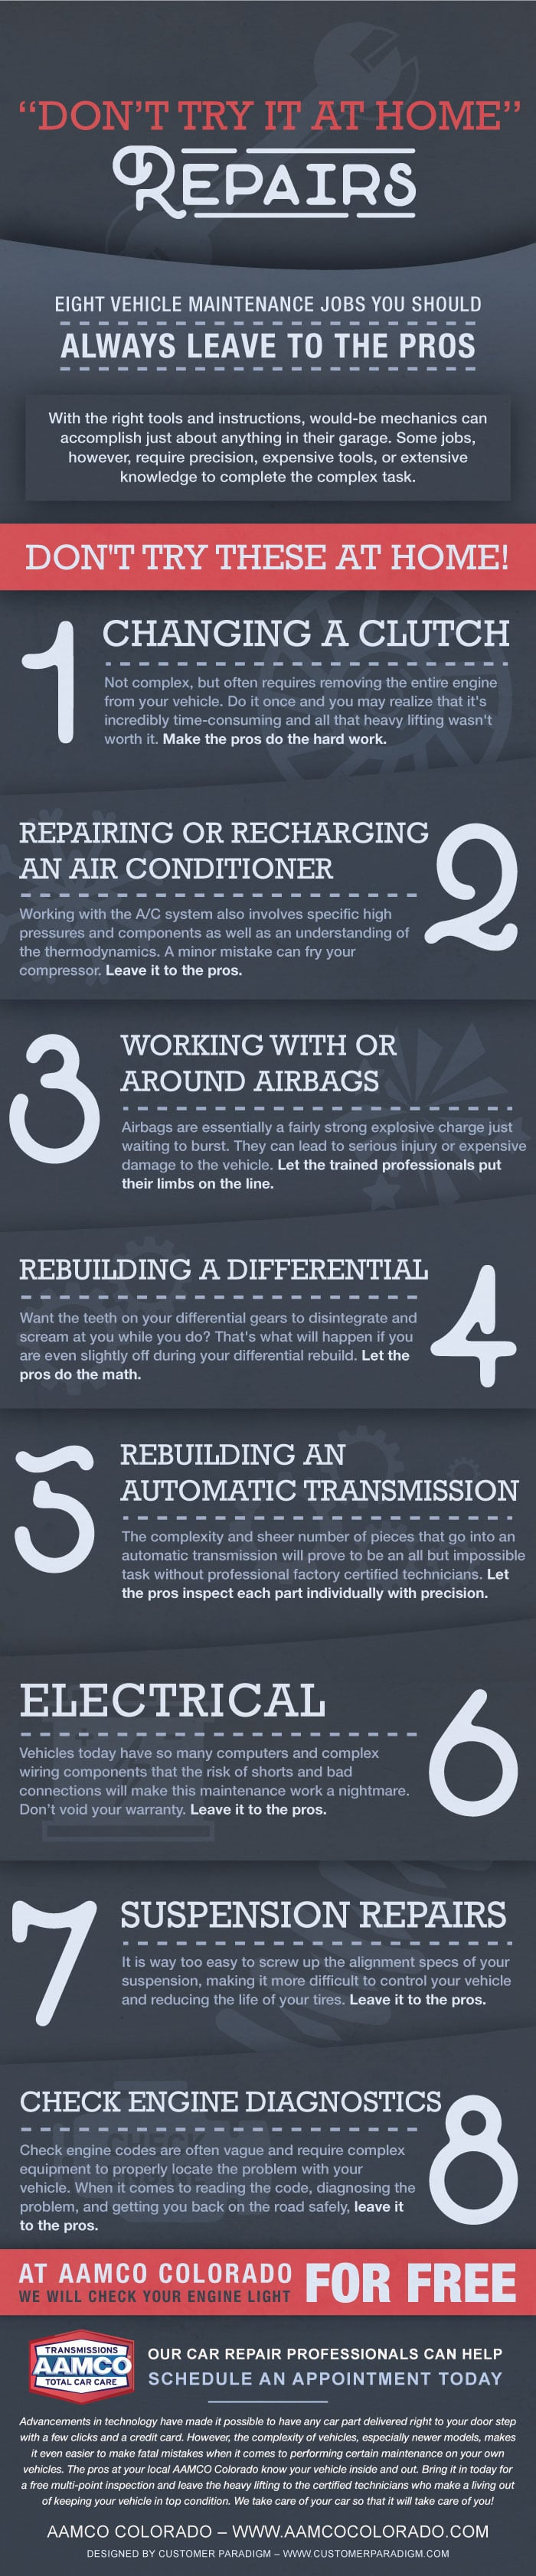 Infographic illustrating  Vehicle Repair or Maintenance You should not try at home